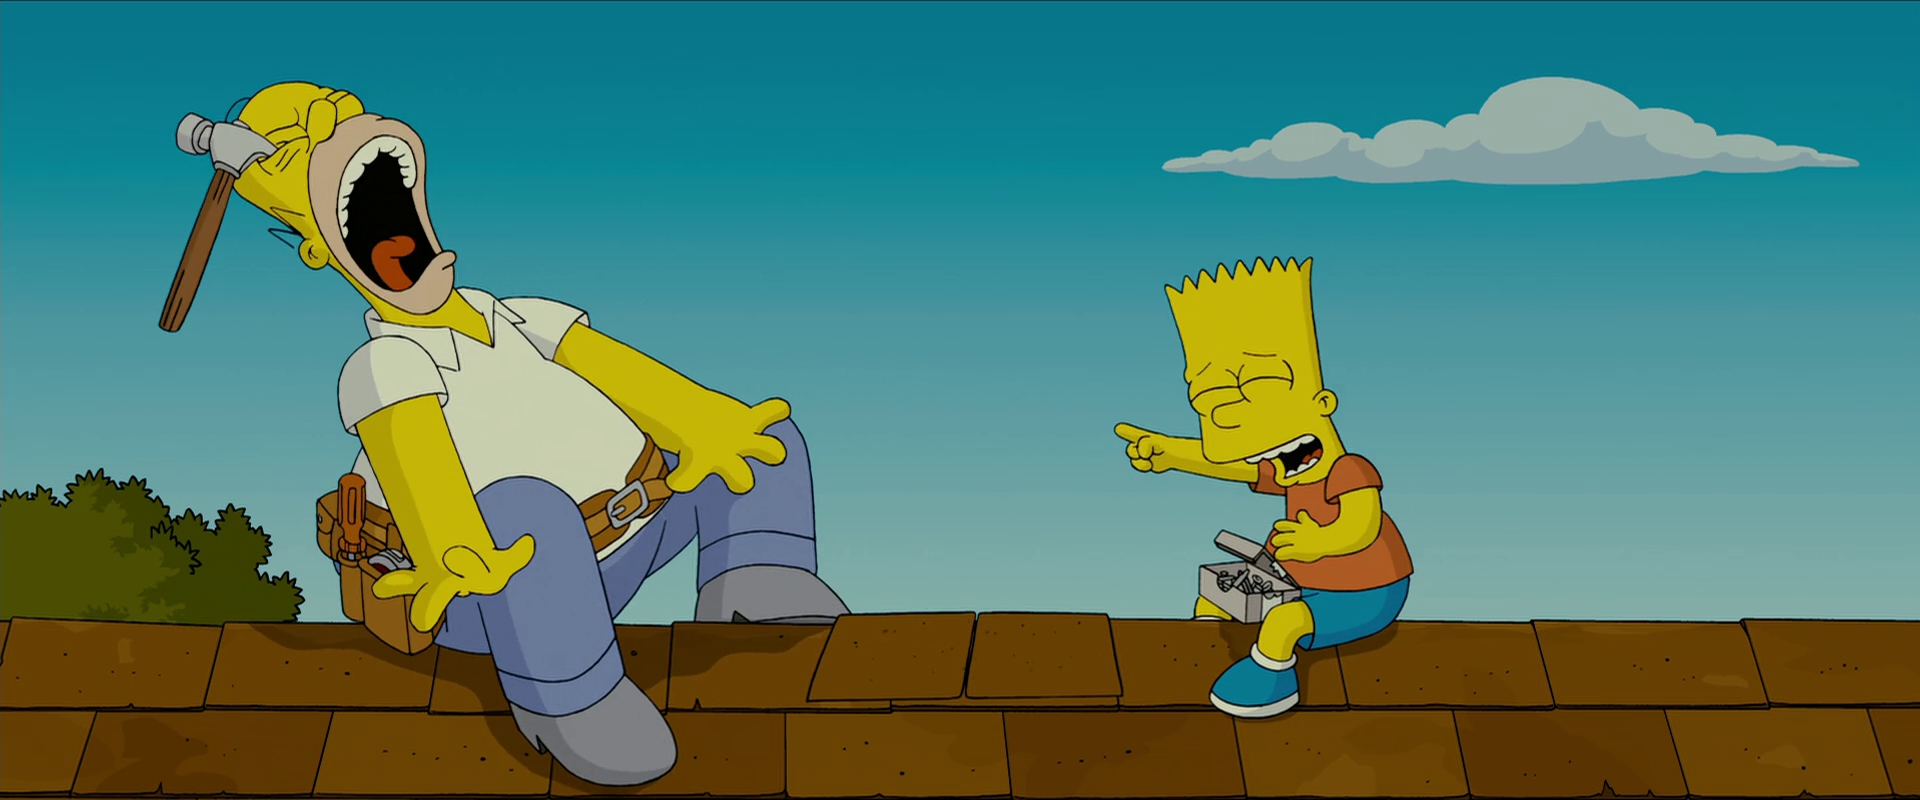 Crazy 3d Wallpapers Hd The Simpsons Movie Wallpapers Hd Backgrounds